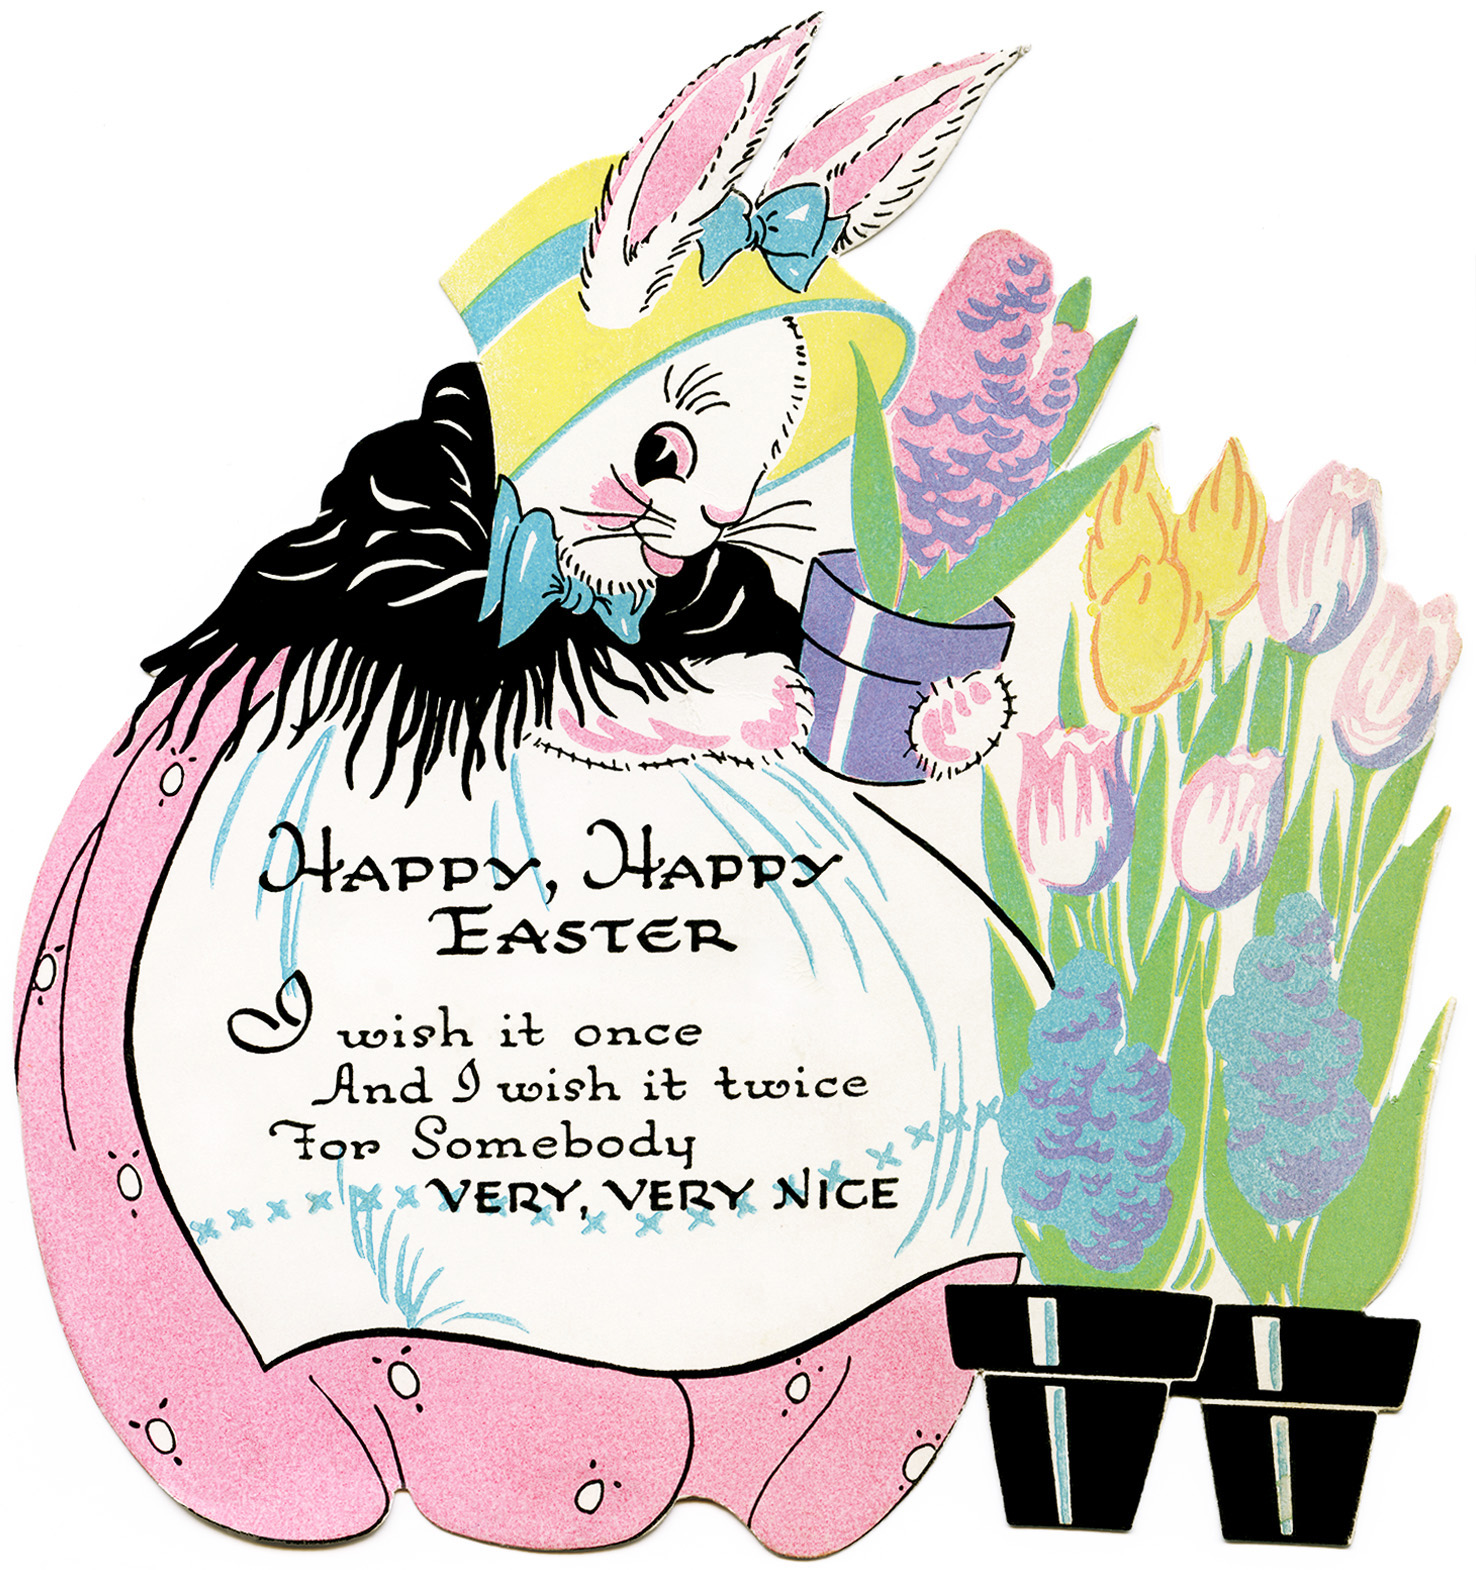 Free vintage easter clipart images clipart transparent download Free Vintage Image ~ Easter Bunny Clipart - Old Design Shop Blog clipart transparent download